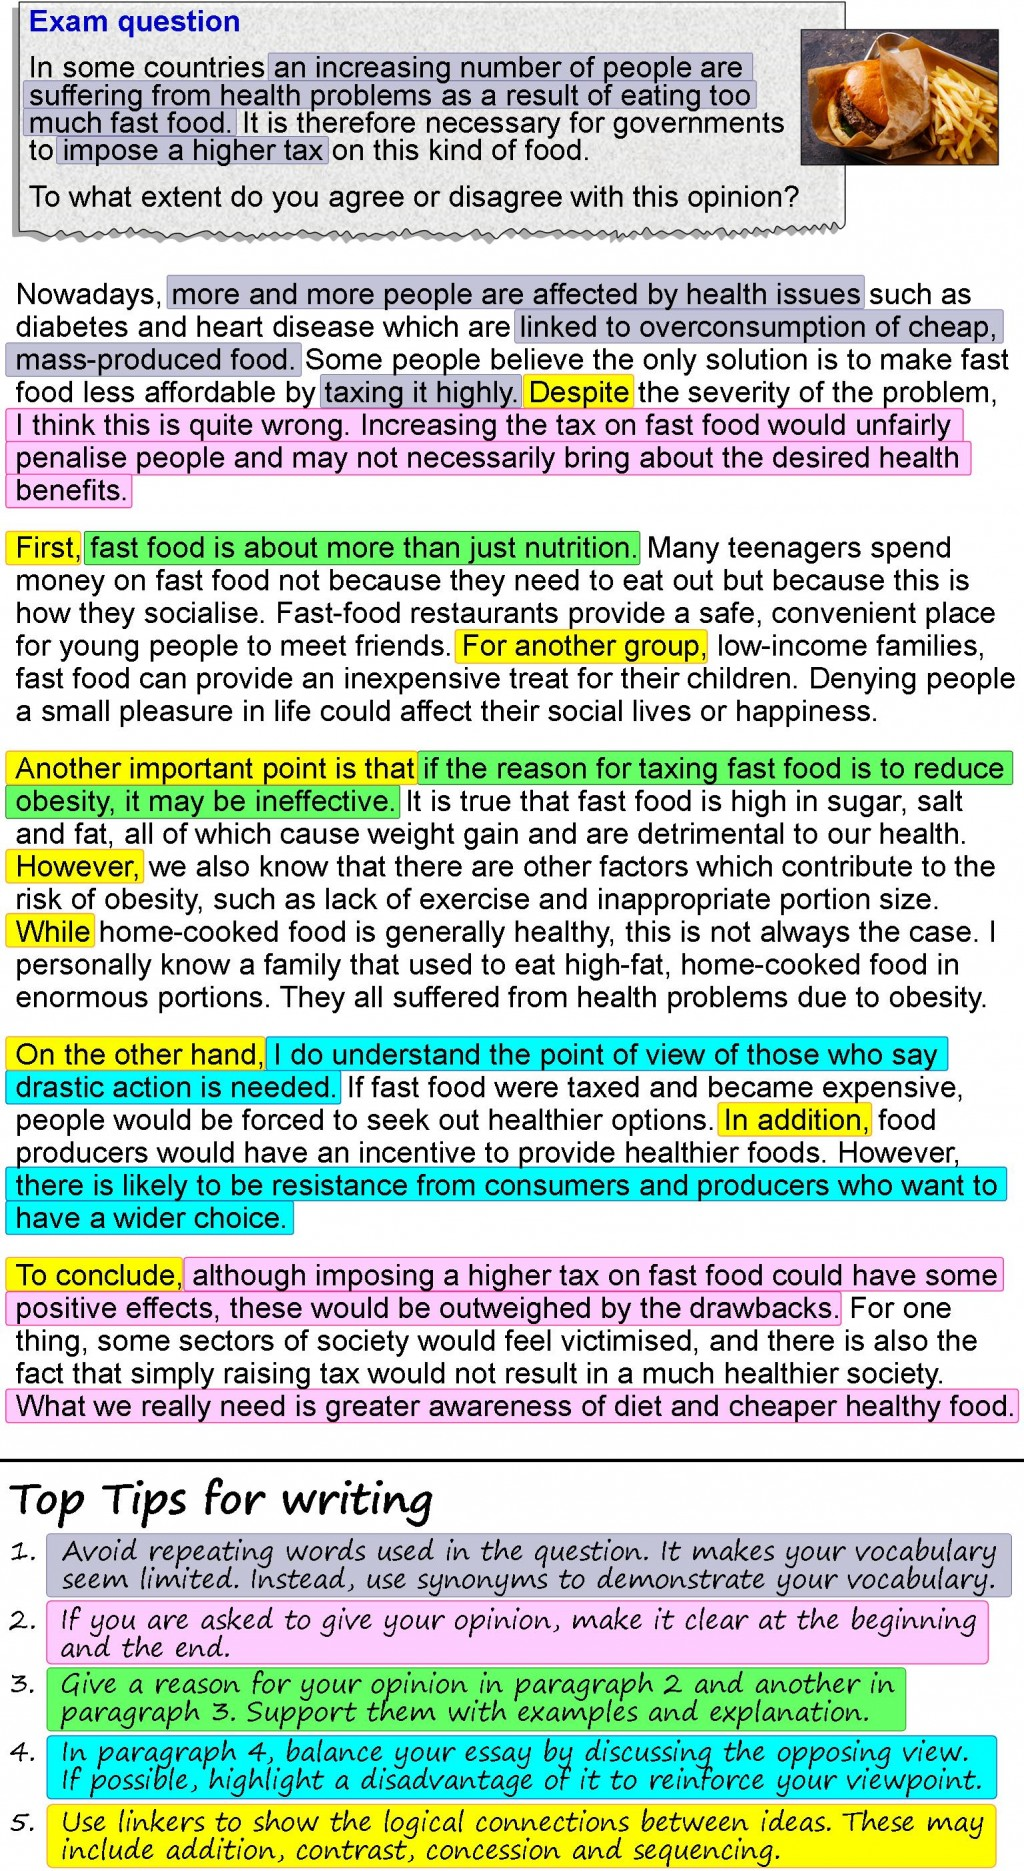 001 Opinion Essay About Fast Food Example An 4 Unbelievable Short British Council Restaurants Large